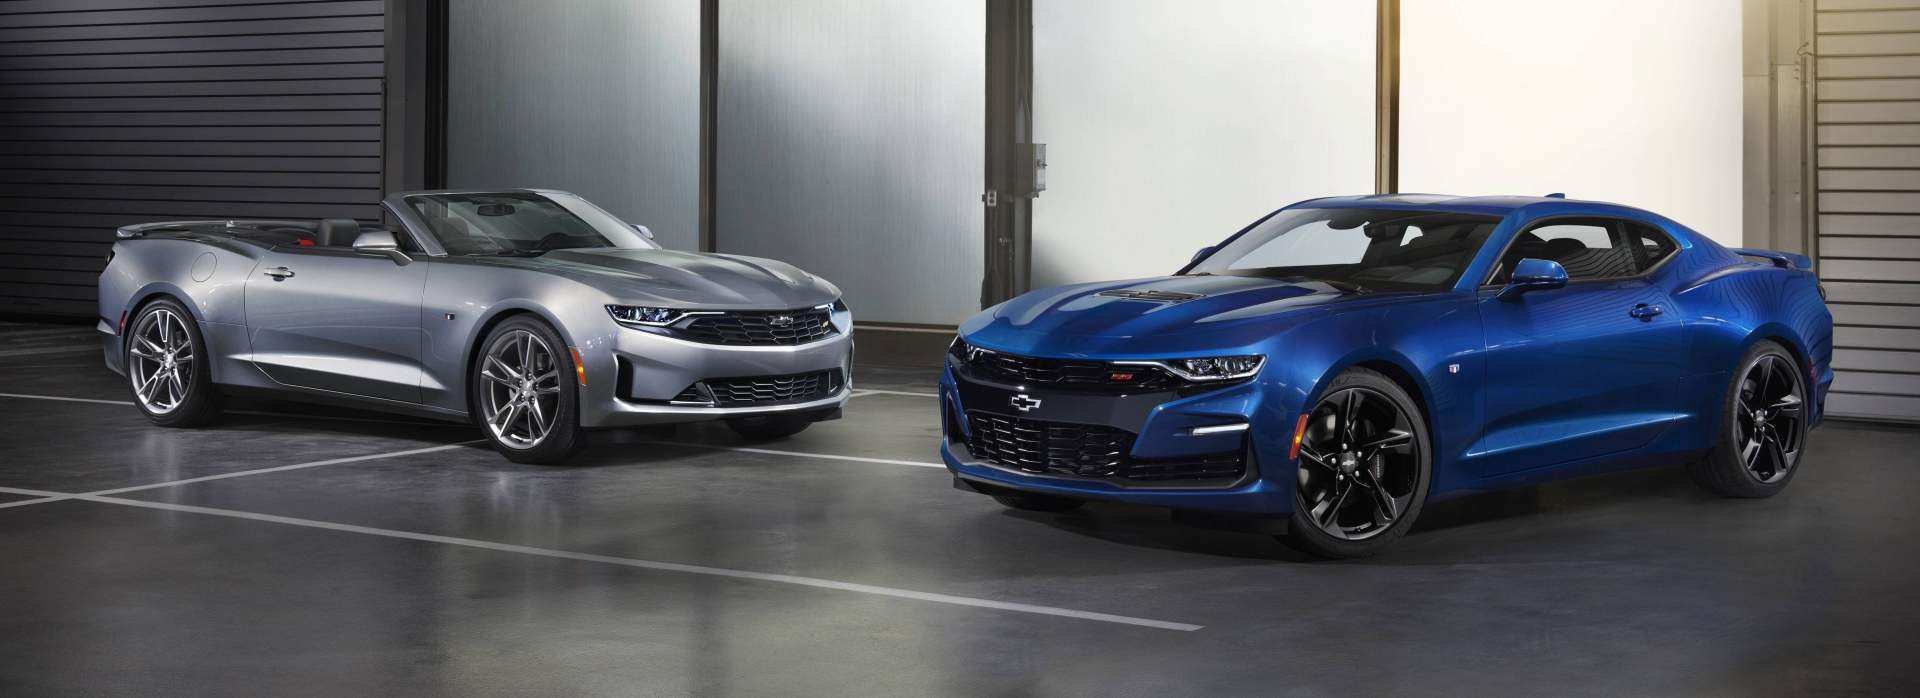 52 New 2020 Chevrolet Camaro Ss Ratings with 2020 Chevrolet Camaro Ss